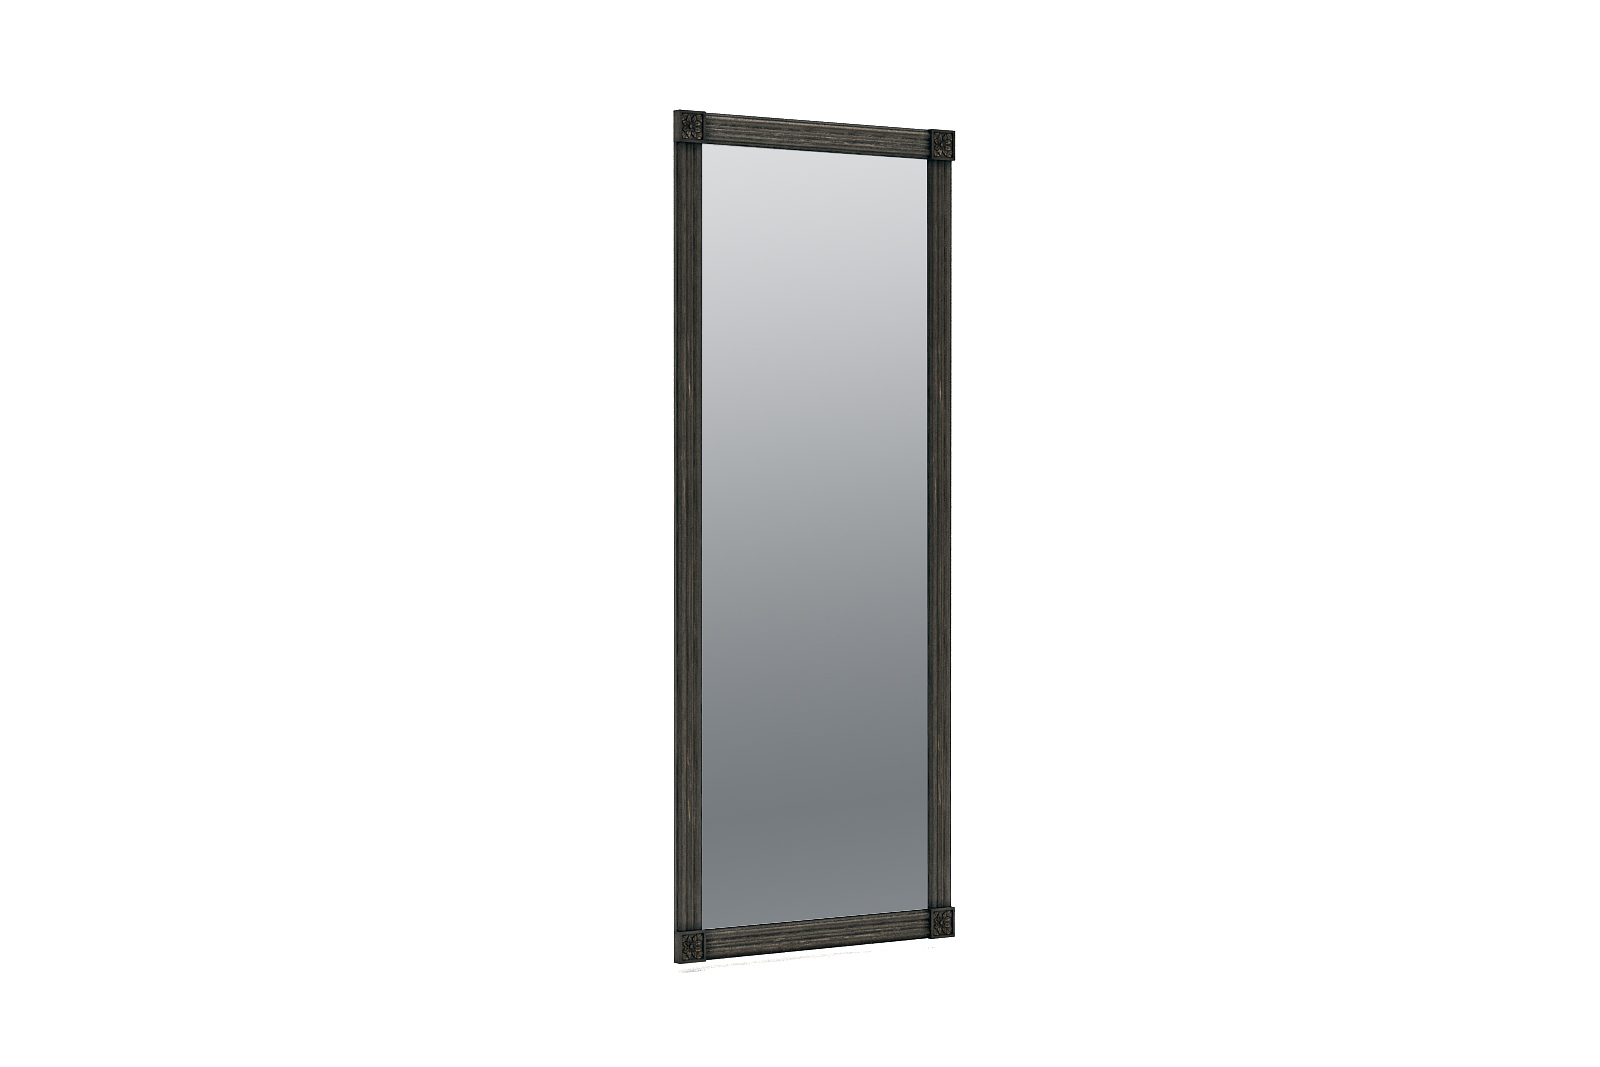 3D old mirror scratches model